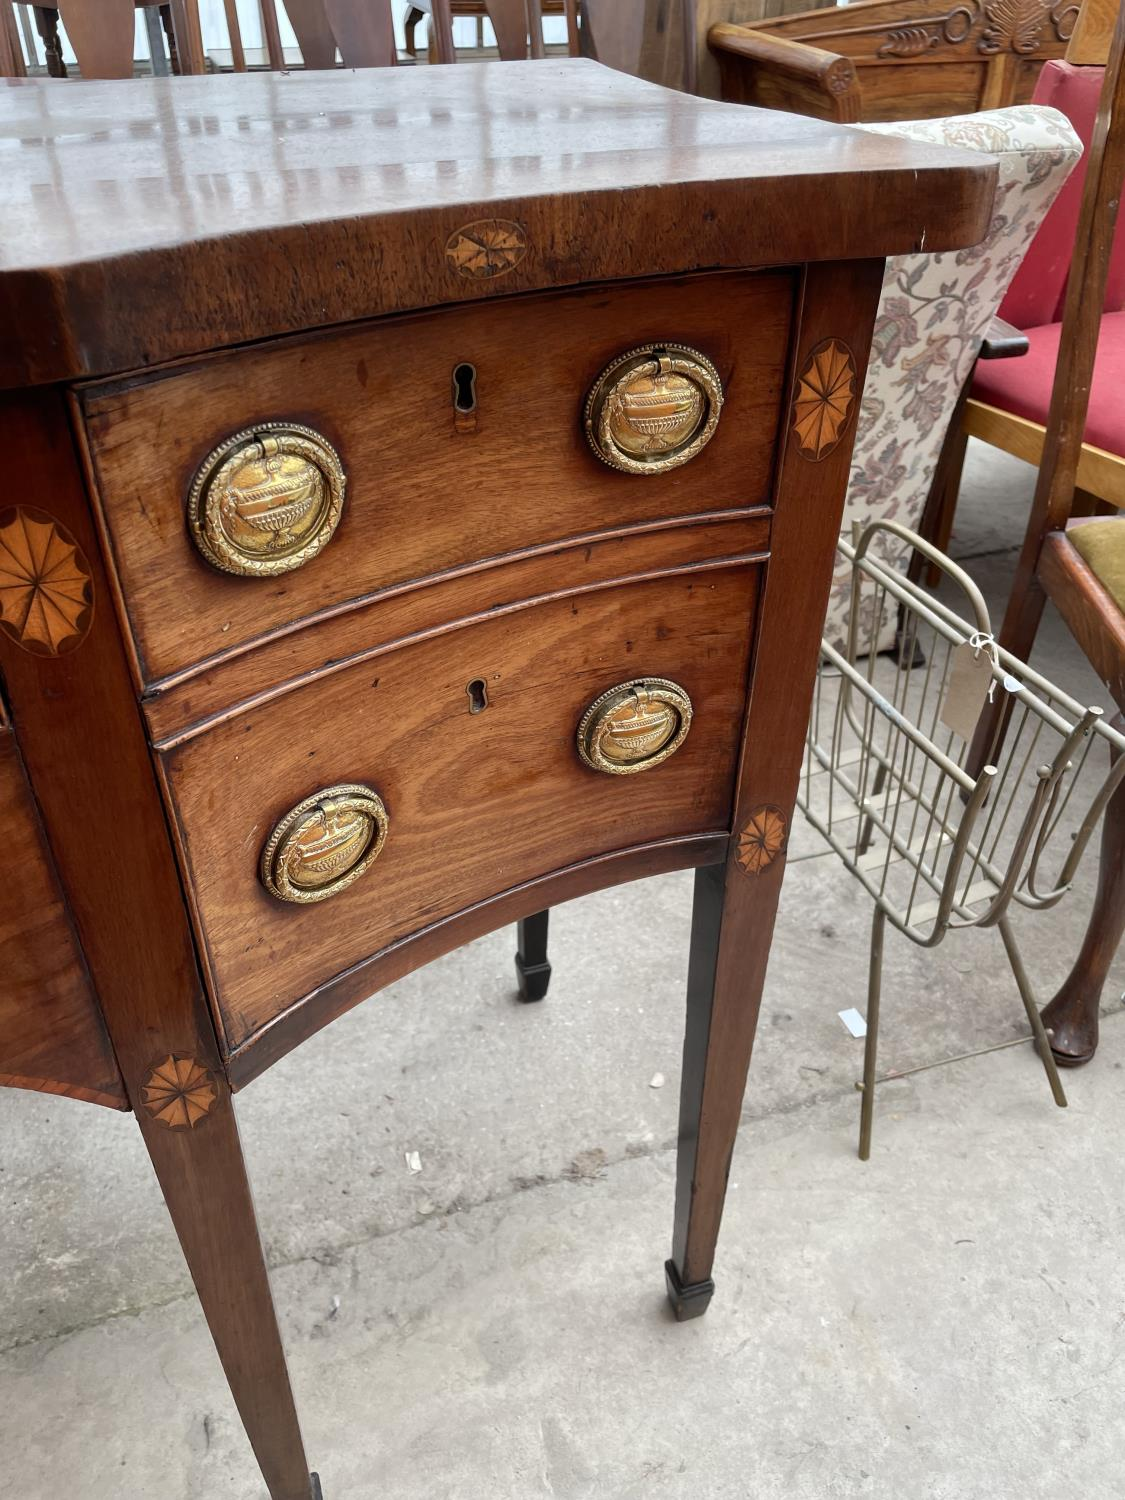 A 19TH CENTURY MAHOGANY AND INLAID SIDEBOARD ENCLOSING FOUR DRAWERS, ON TAPERED LEGS, WITH SPADE - Image 6 of 7